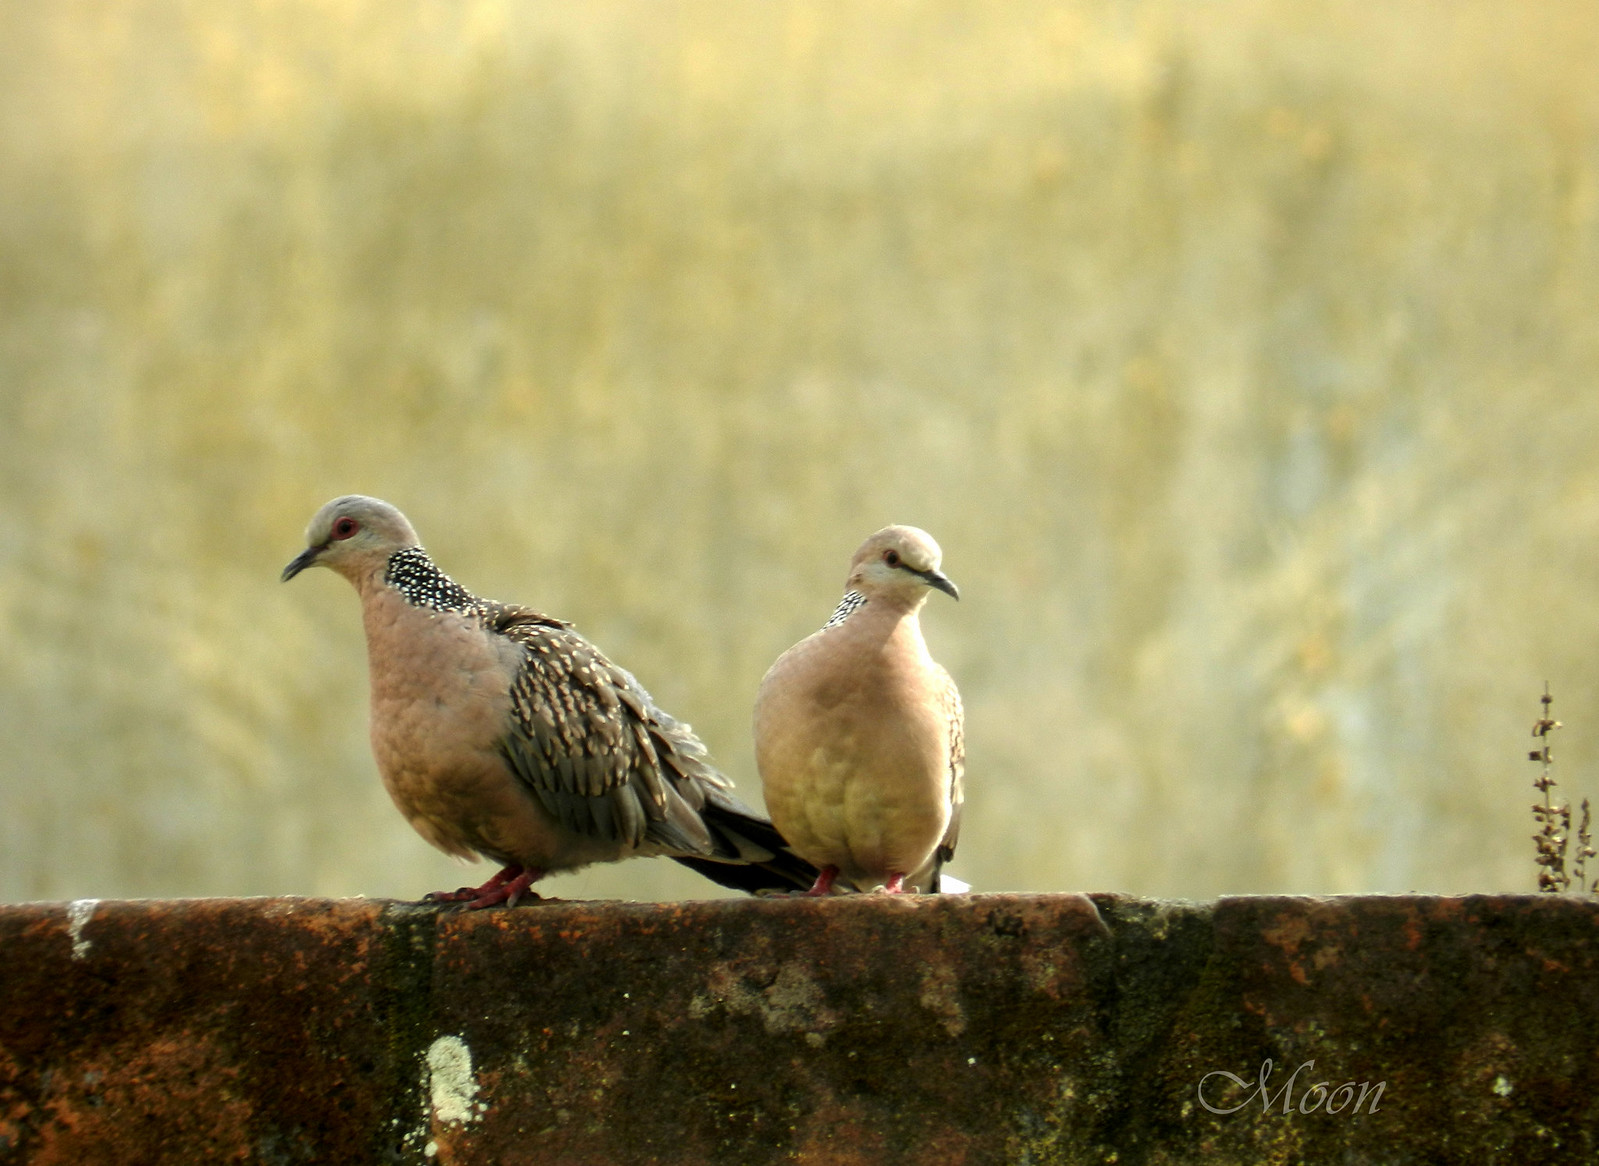 doves, pigeons, birds, daily post photo challenge, partners